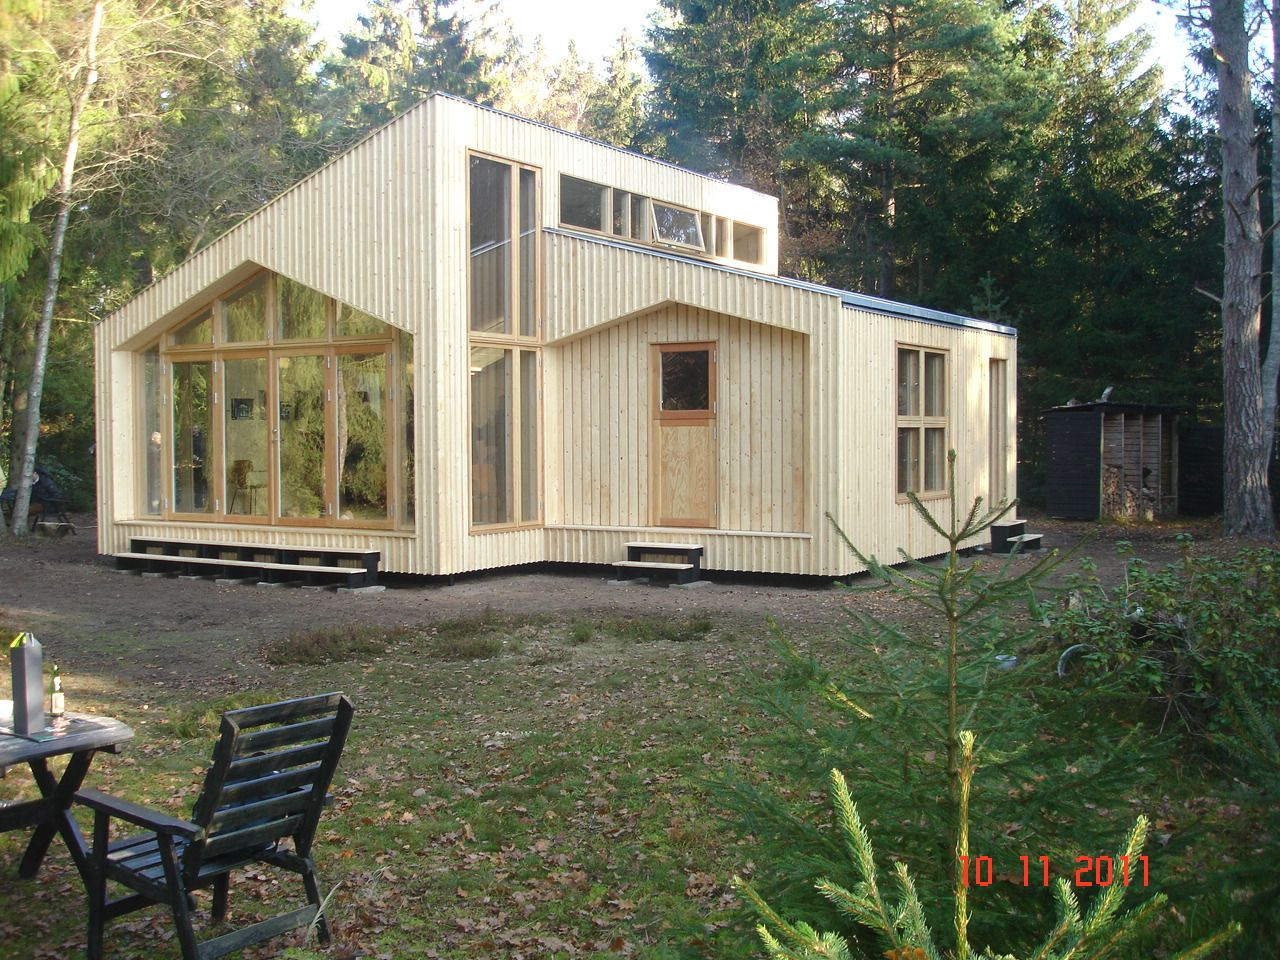 complete house printed out of plywood on a cnc machine for snap complete house printed out of plywood on a cnc machine for snap together assembly